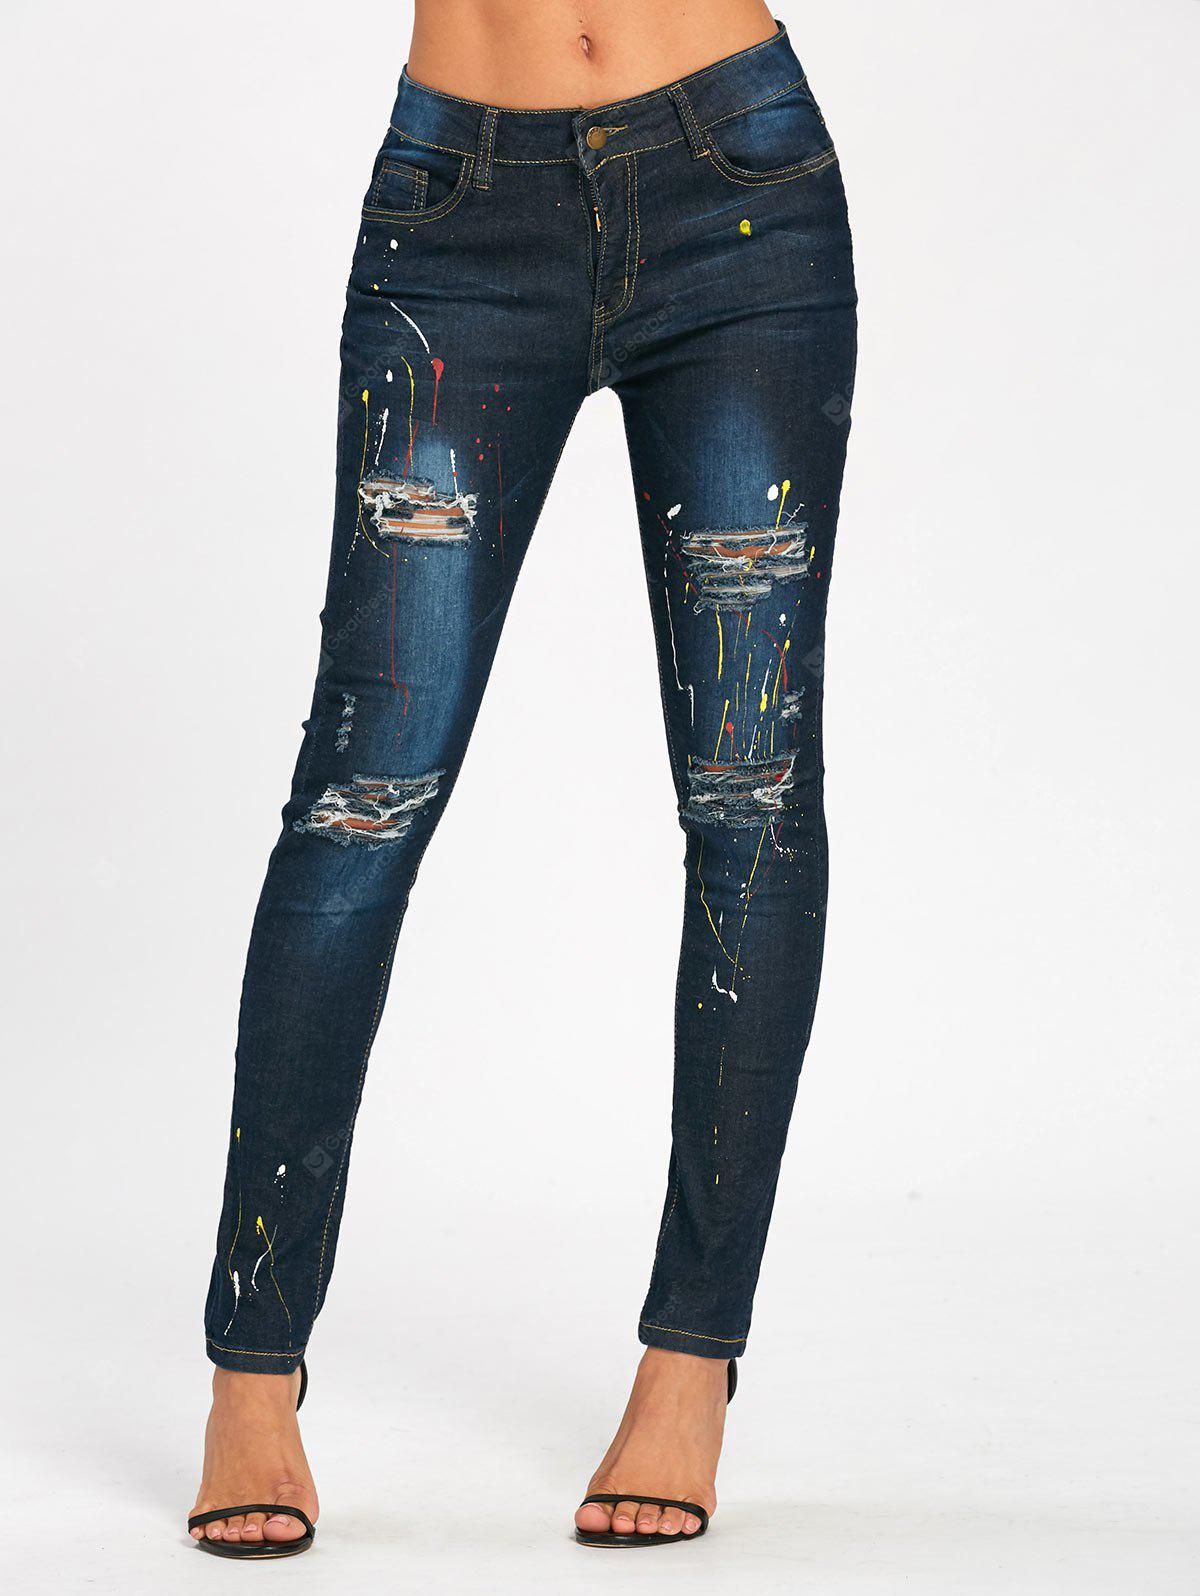 BLUE 2XL Splash Ink Printed Pencil Ripped Jeans